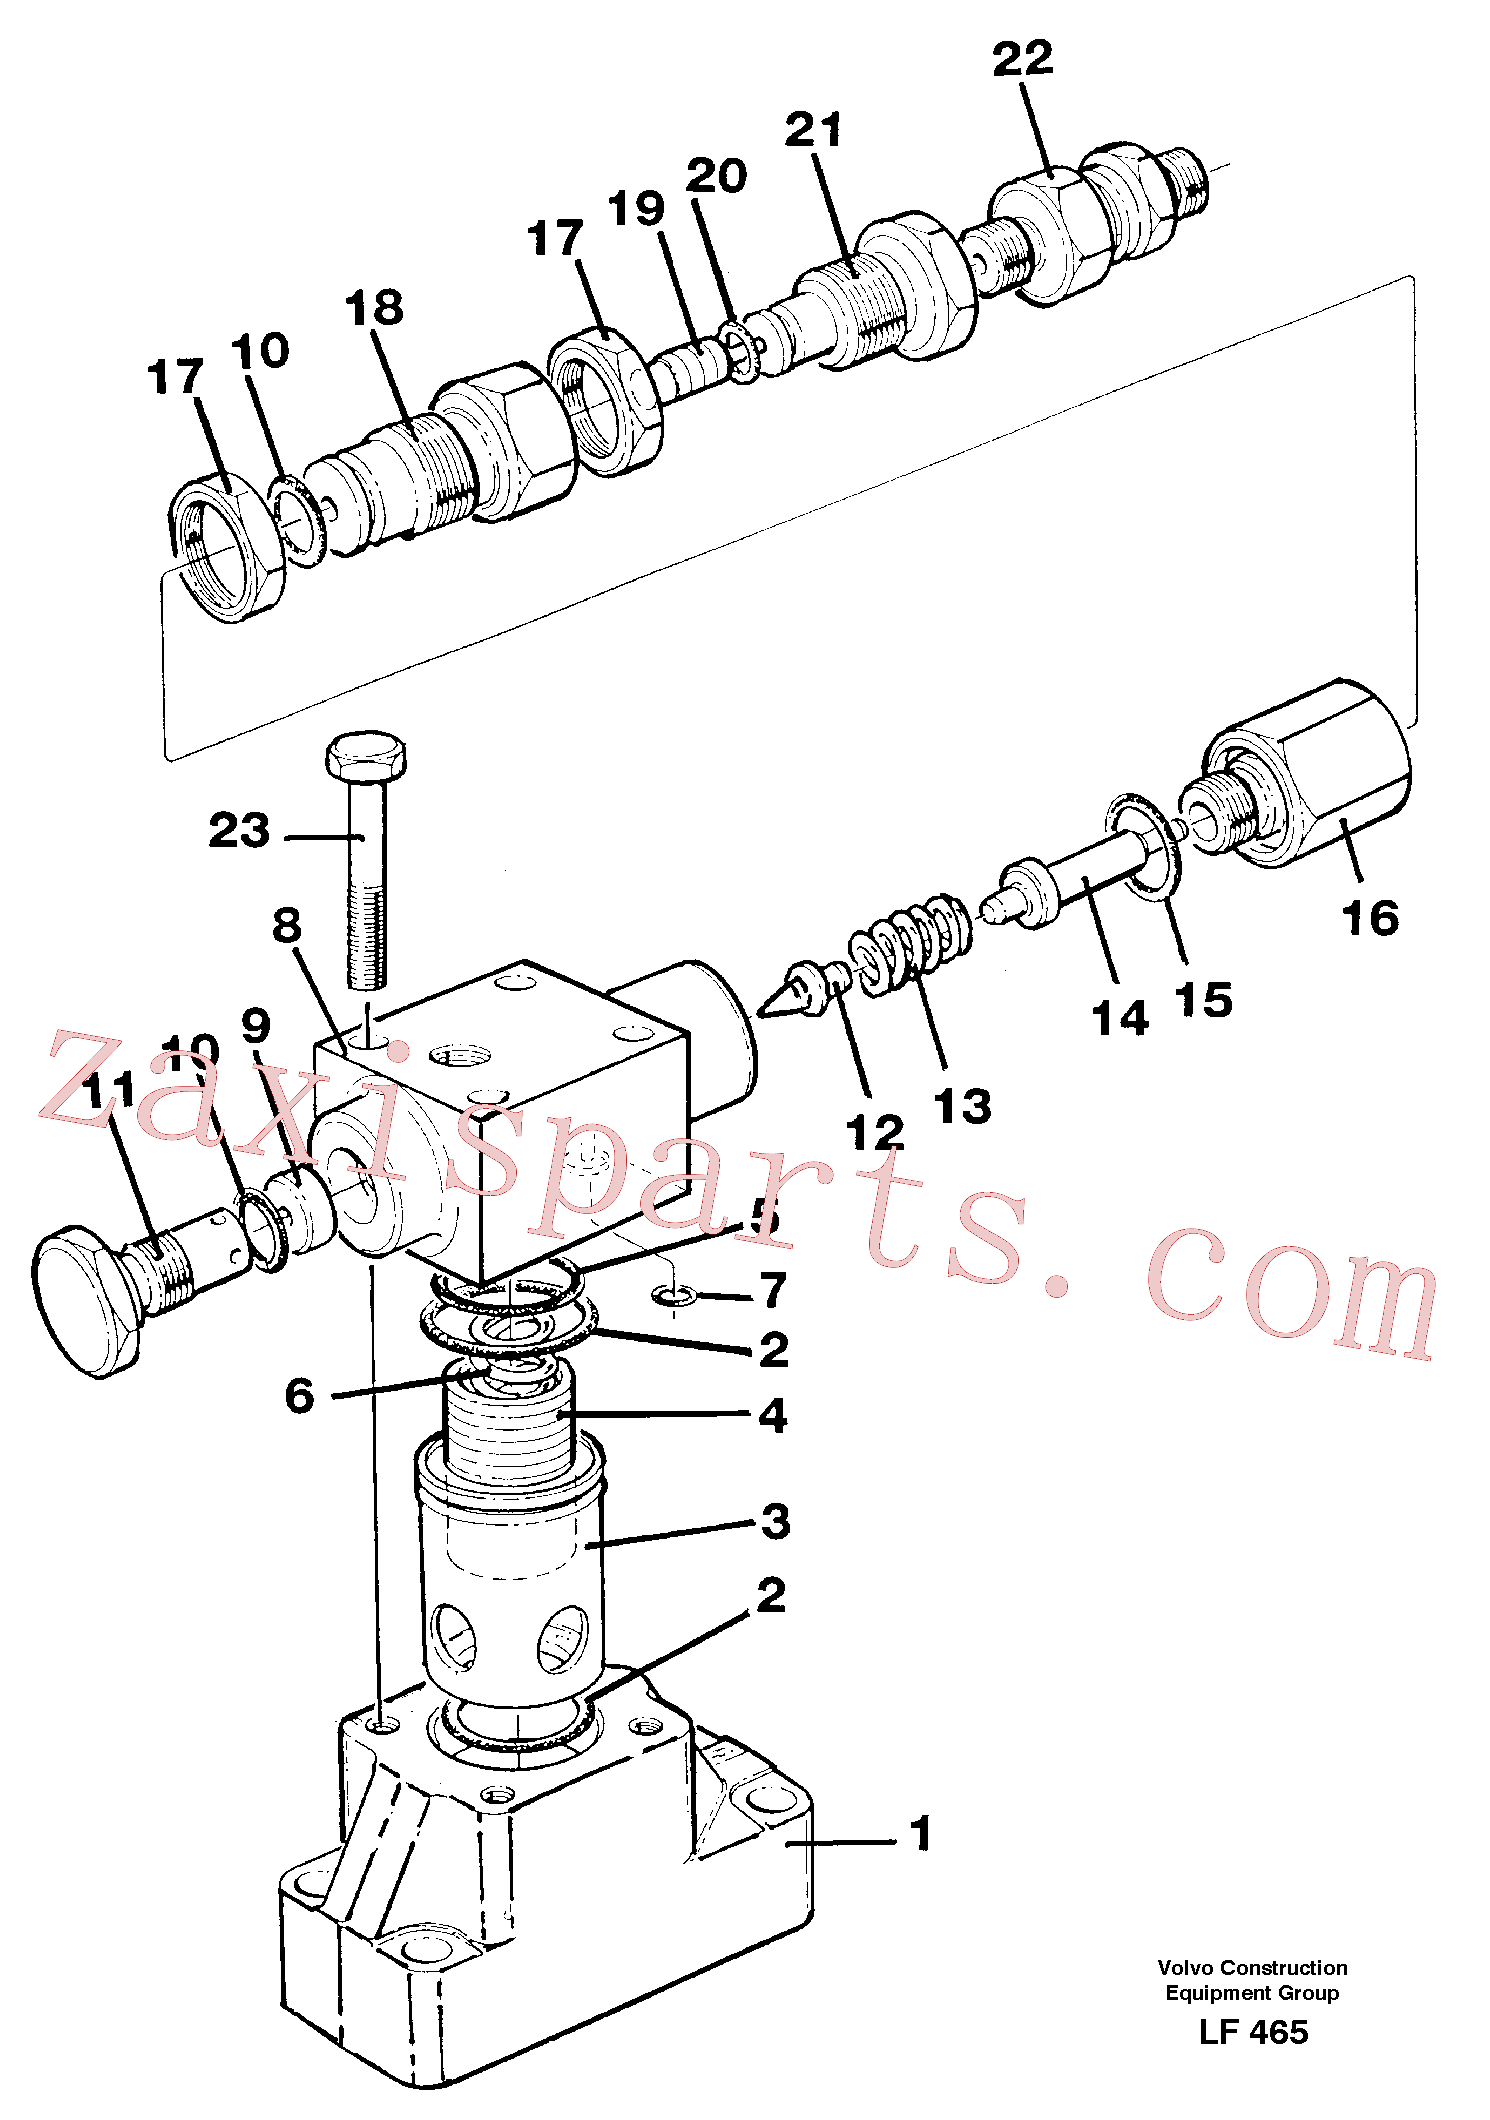 VOE14340724 for Volvo Pressure limiting valve(LF465 assembly)